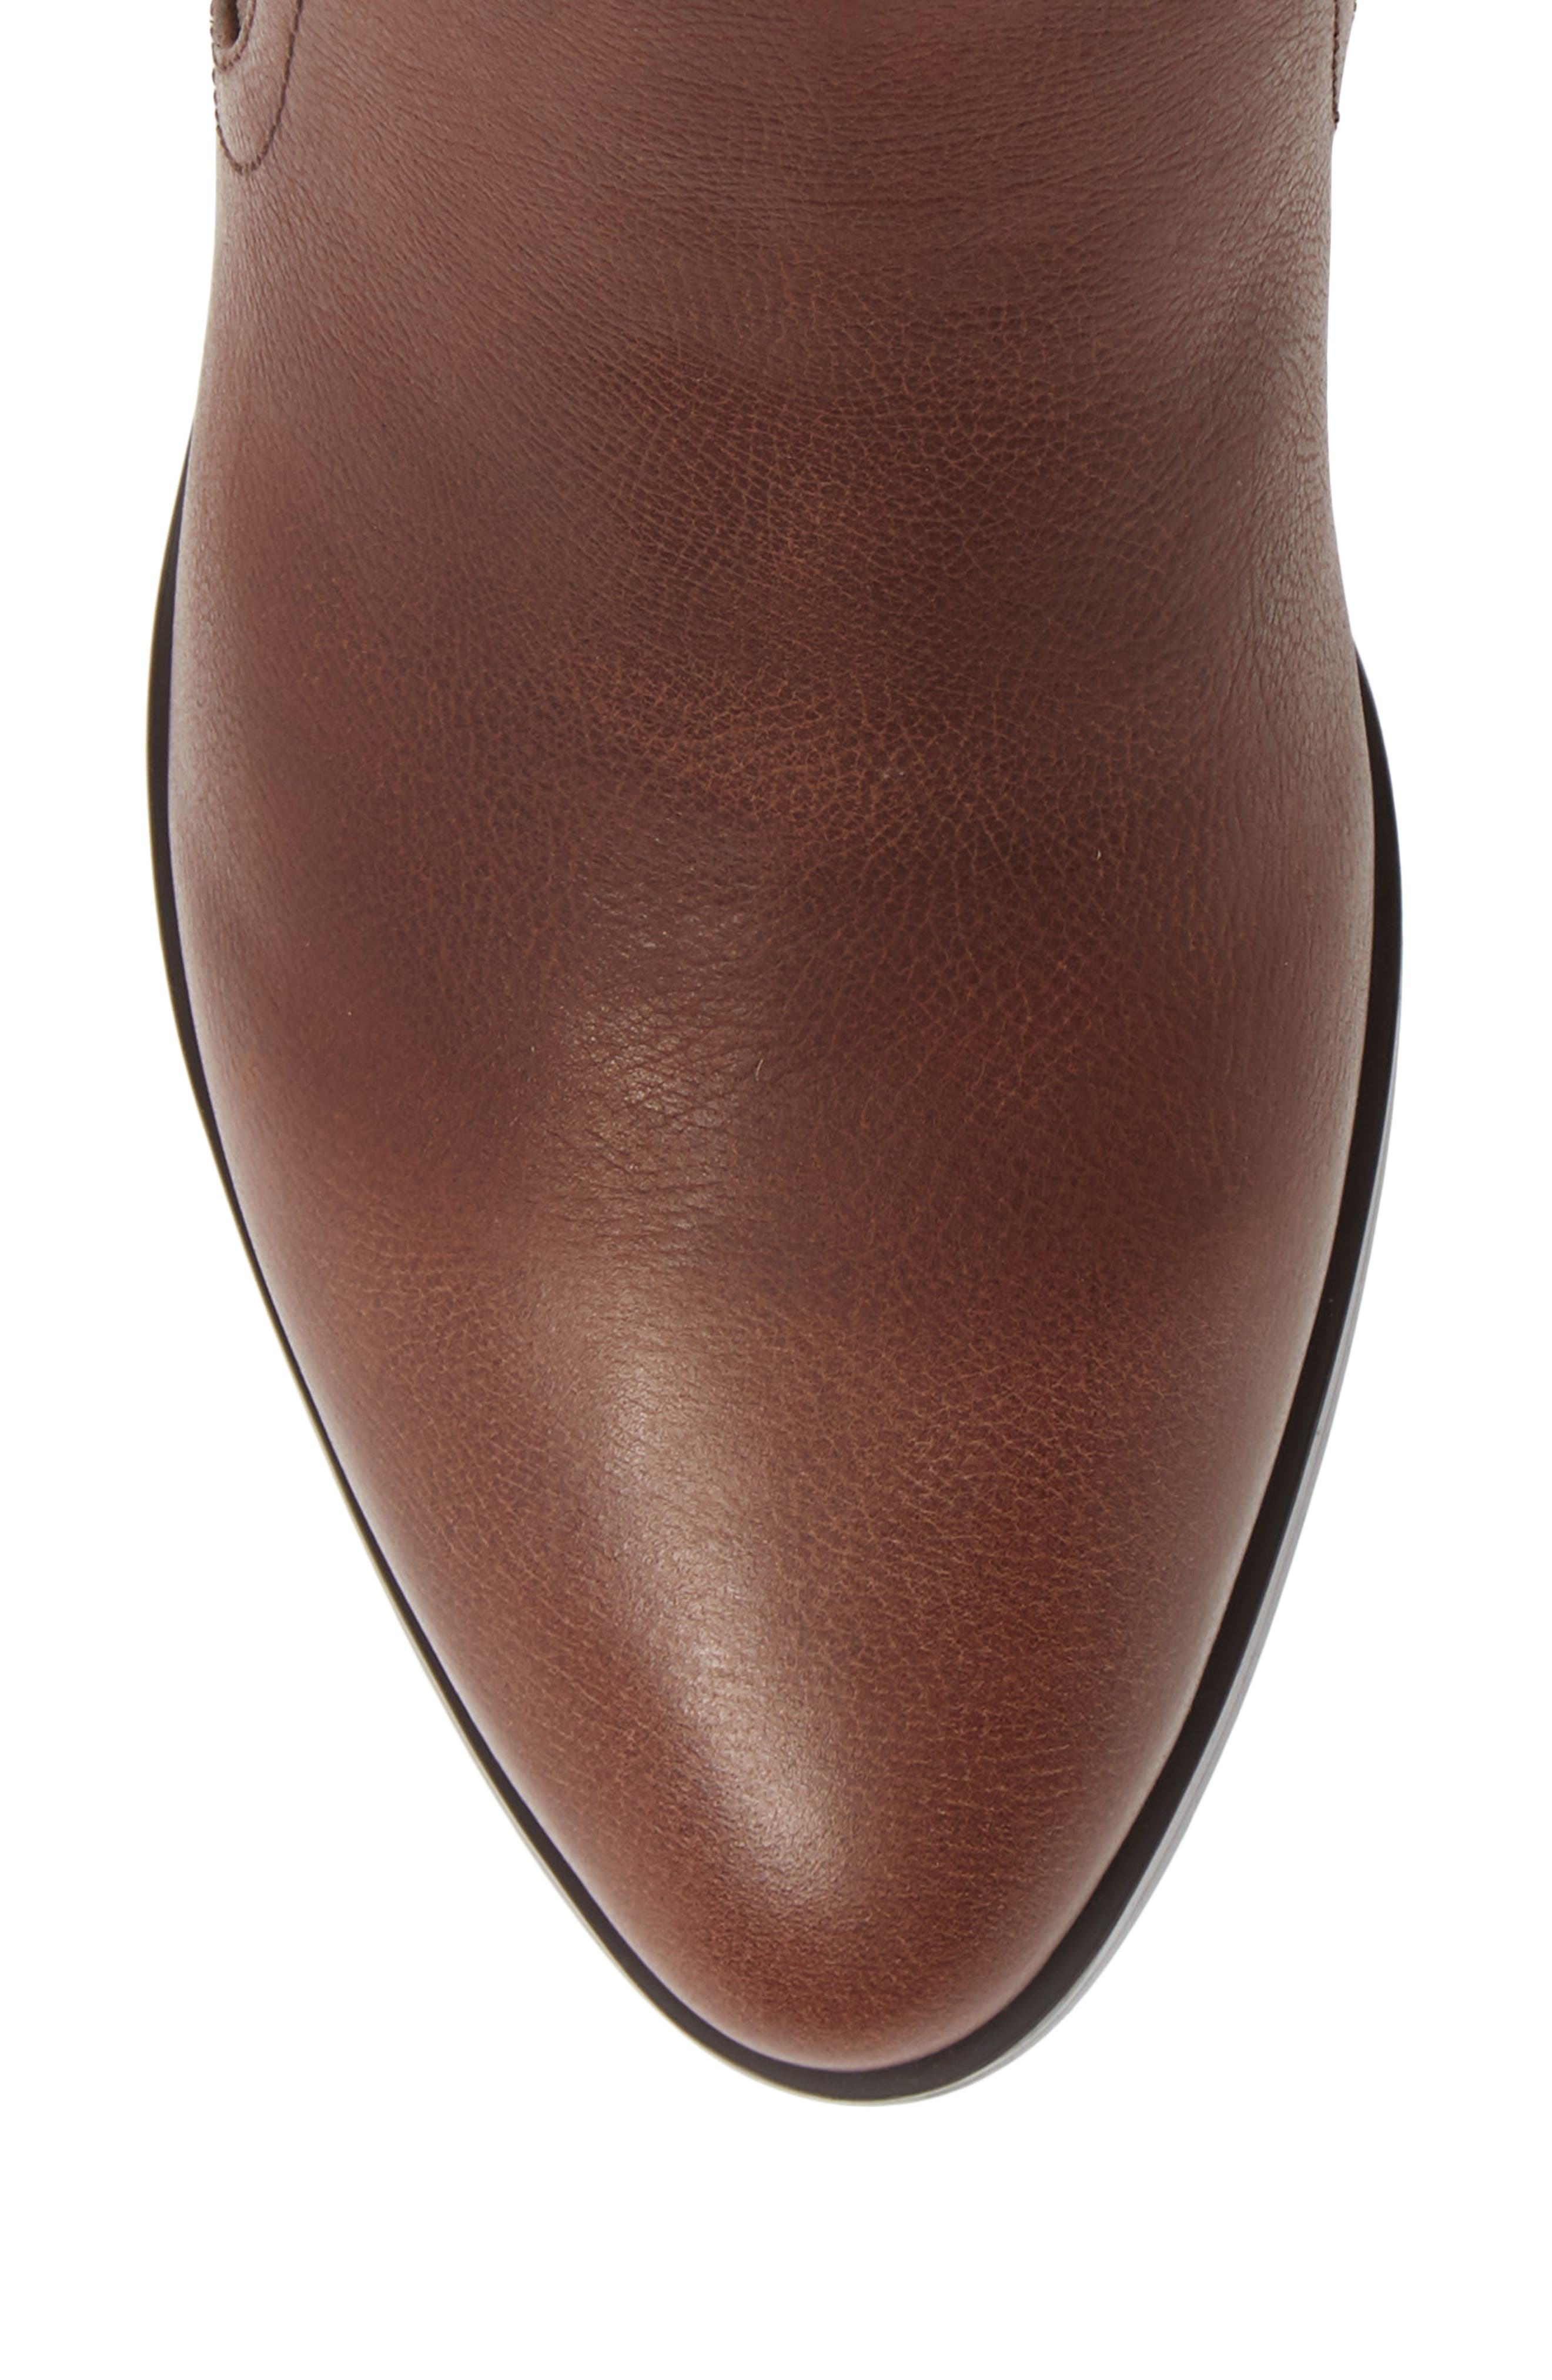 Maxie Chelsea Boot,                             Alternate thumbnail 5, color,                             LUGGAGE LEATHER